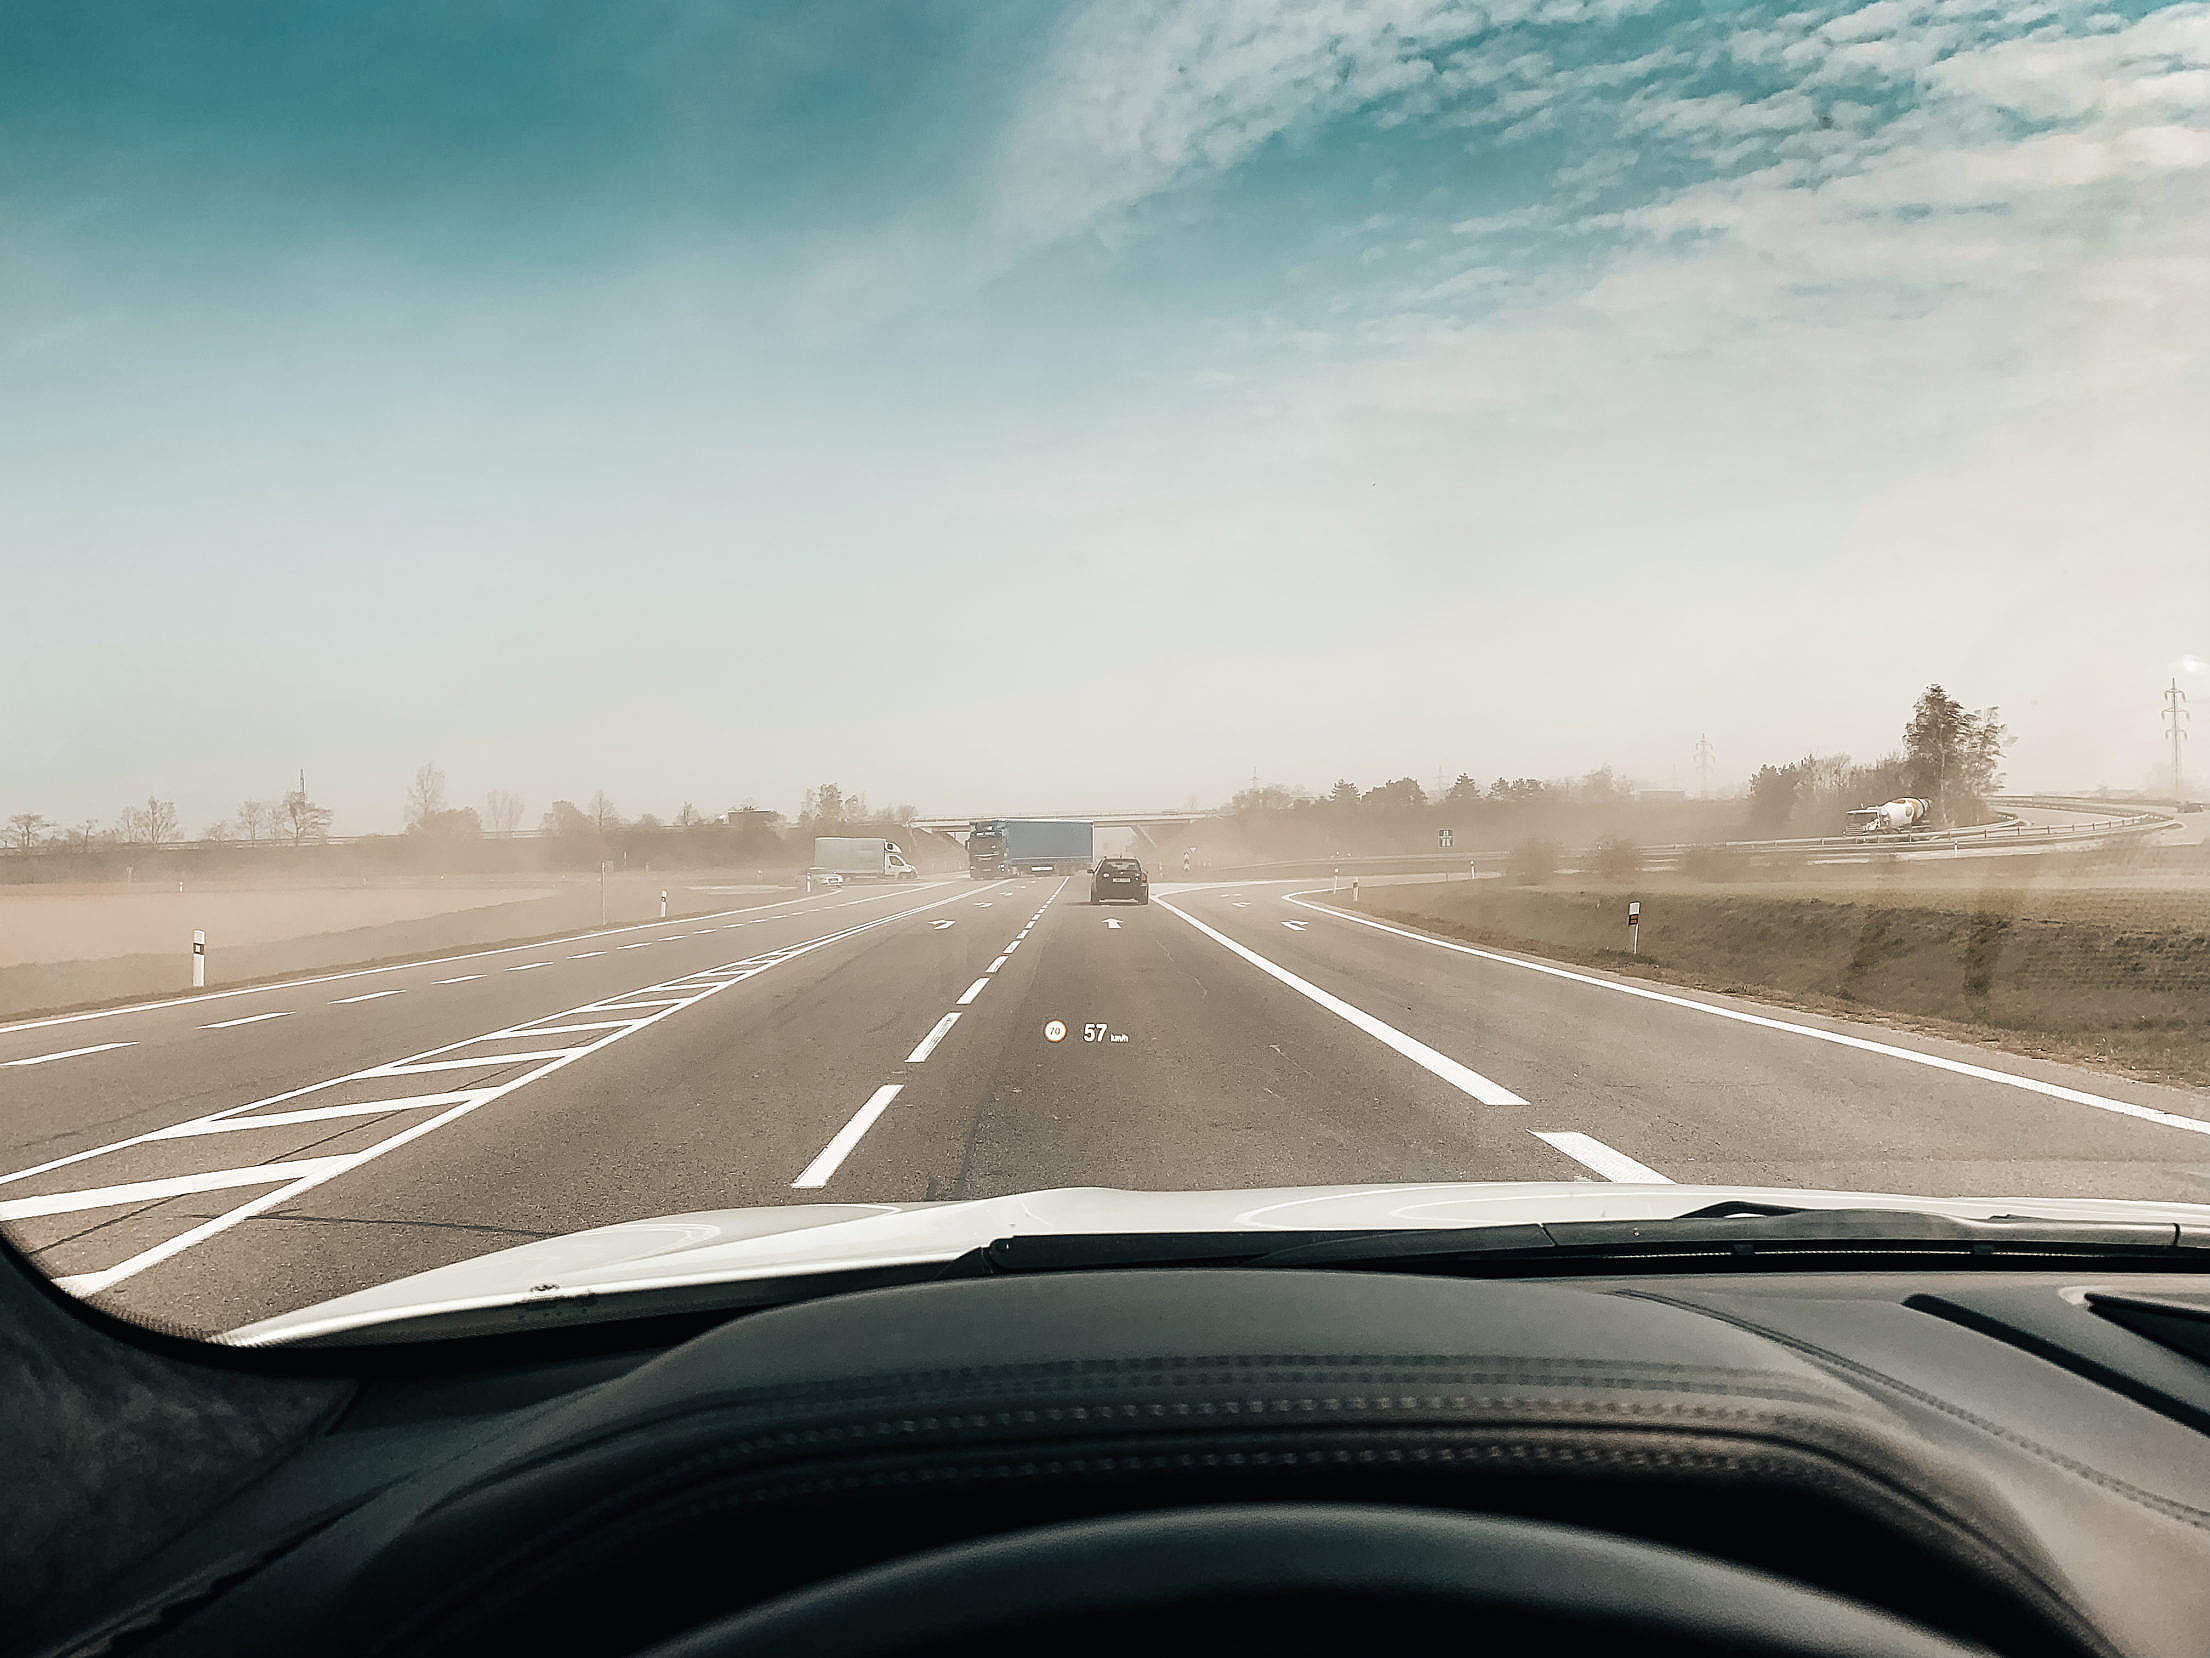 POV Driving a Car Through Dust From Fields Free Stock Photo